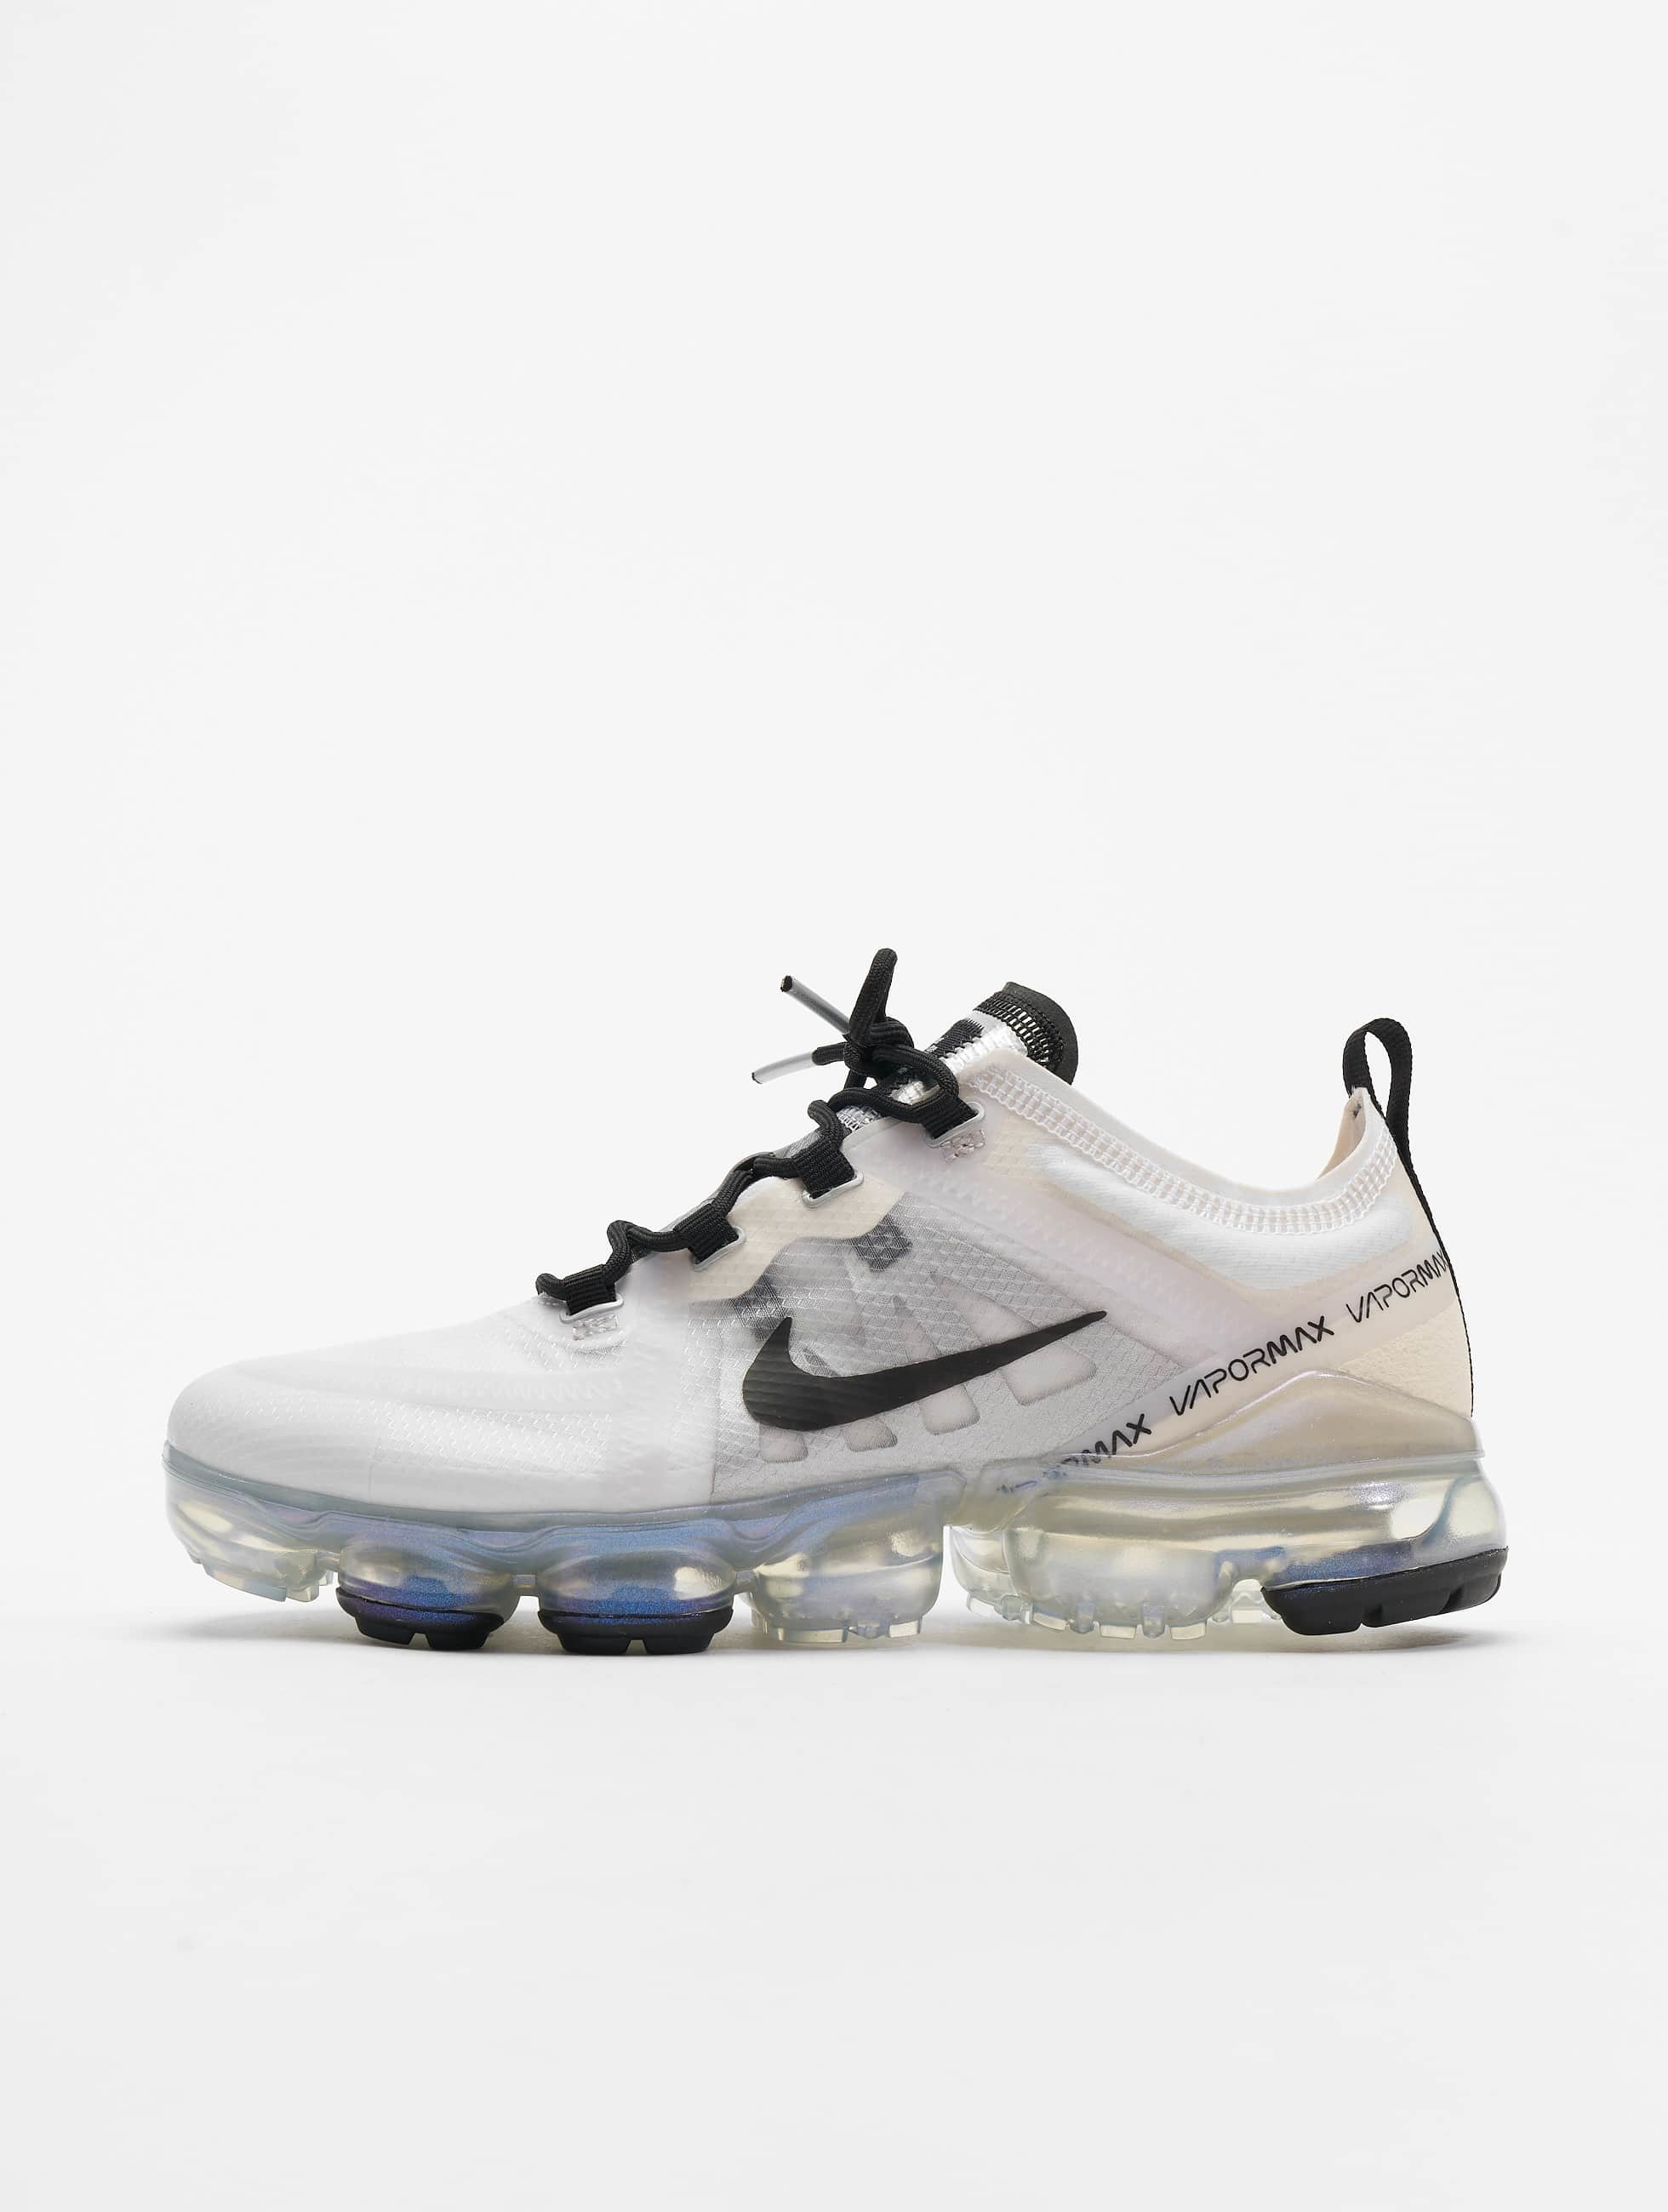 modische Muster Beste große Auswahl Nike Air Vapormax 2019 Sneakers White/Black/Pale Ivory/Metallic_Silvern